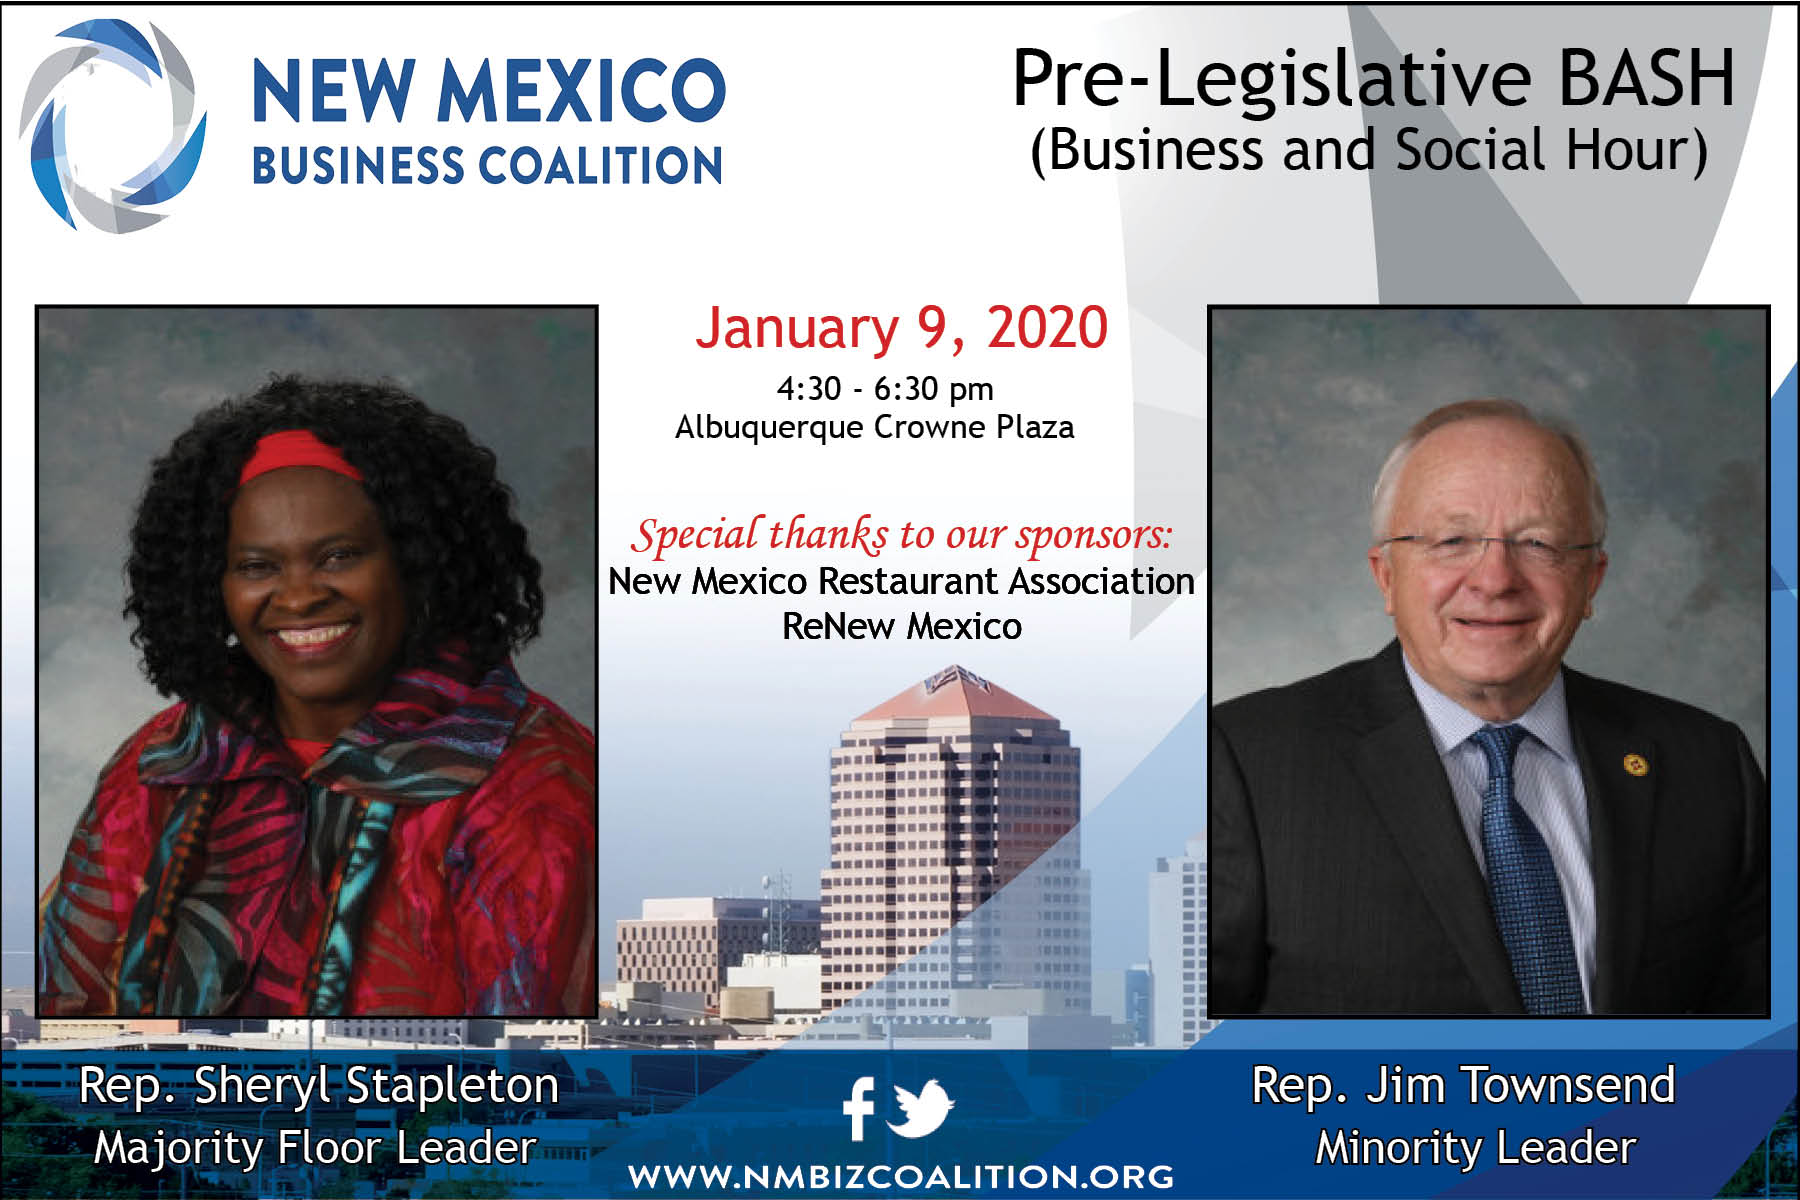 2020 Pre-Legislative Session BASH (Business and Social Hour)